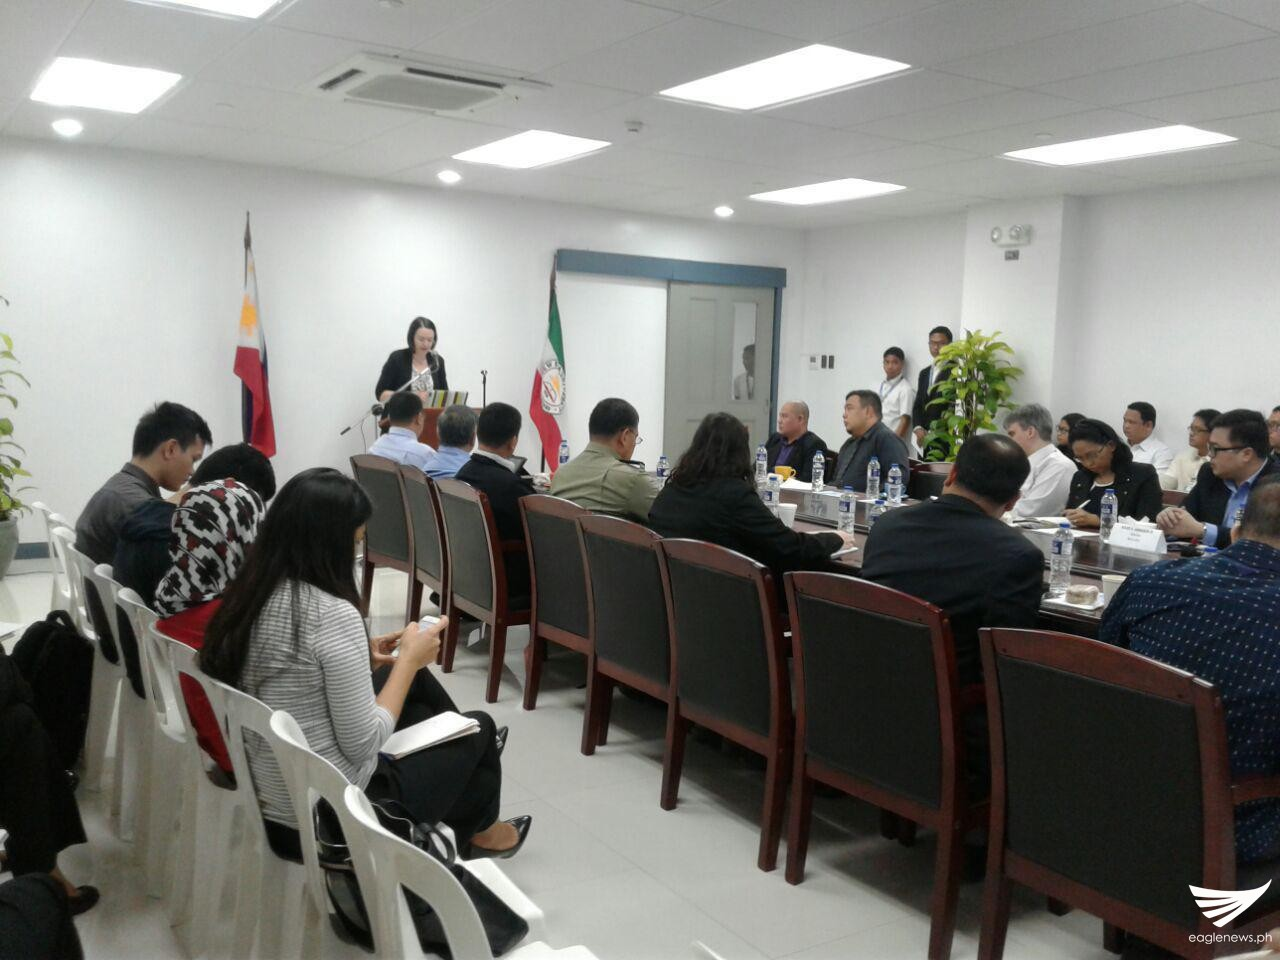 Dr. Ekaterina Koldunova talks about Russia's bilateral and multilateral relations with the Philippines and ASEAN, during a roundtable discussion held on Friday, November 25, at the New Era University's ASEAN Studies Center in Quezon City. (Eagle News Service)